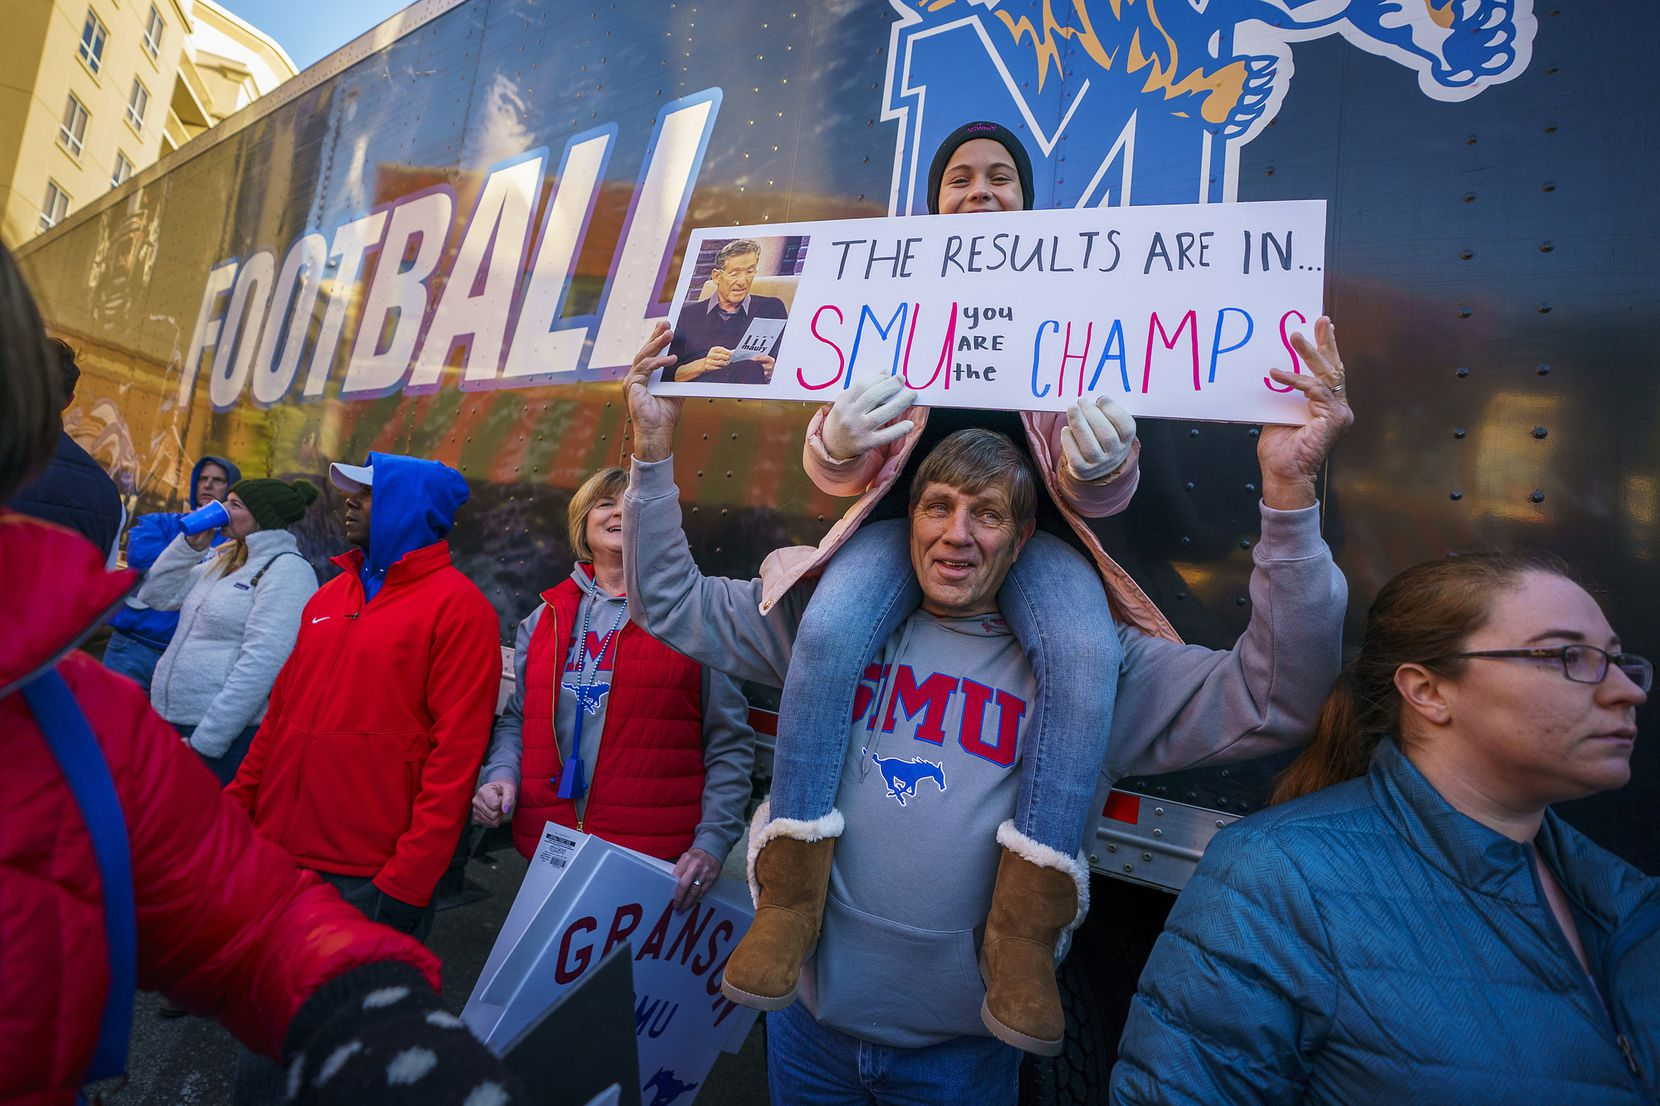 Ellie Granson, younger sister of SMU tight end Kylen Granson, holds a sign atop the shoulders of her uncle Bob Groen during ESPN College GameDay on Beale Street before an NCAA football game  on Saturday, Nov. 2, 2019, in Memphis, Tenn.